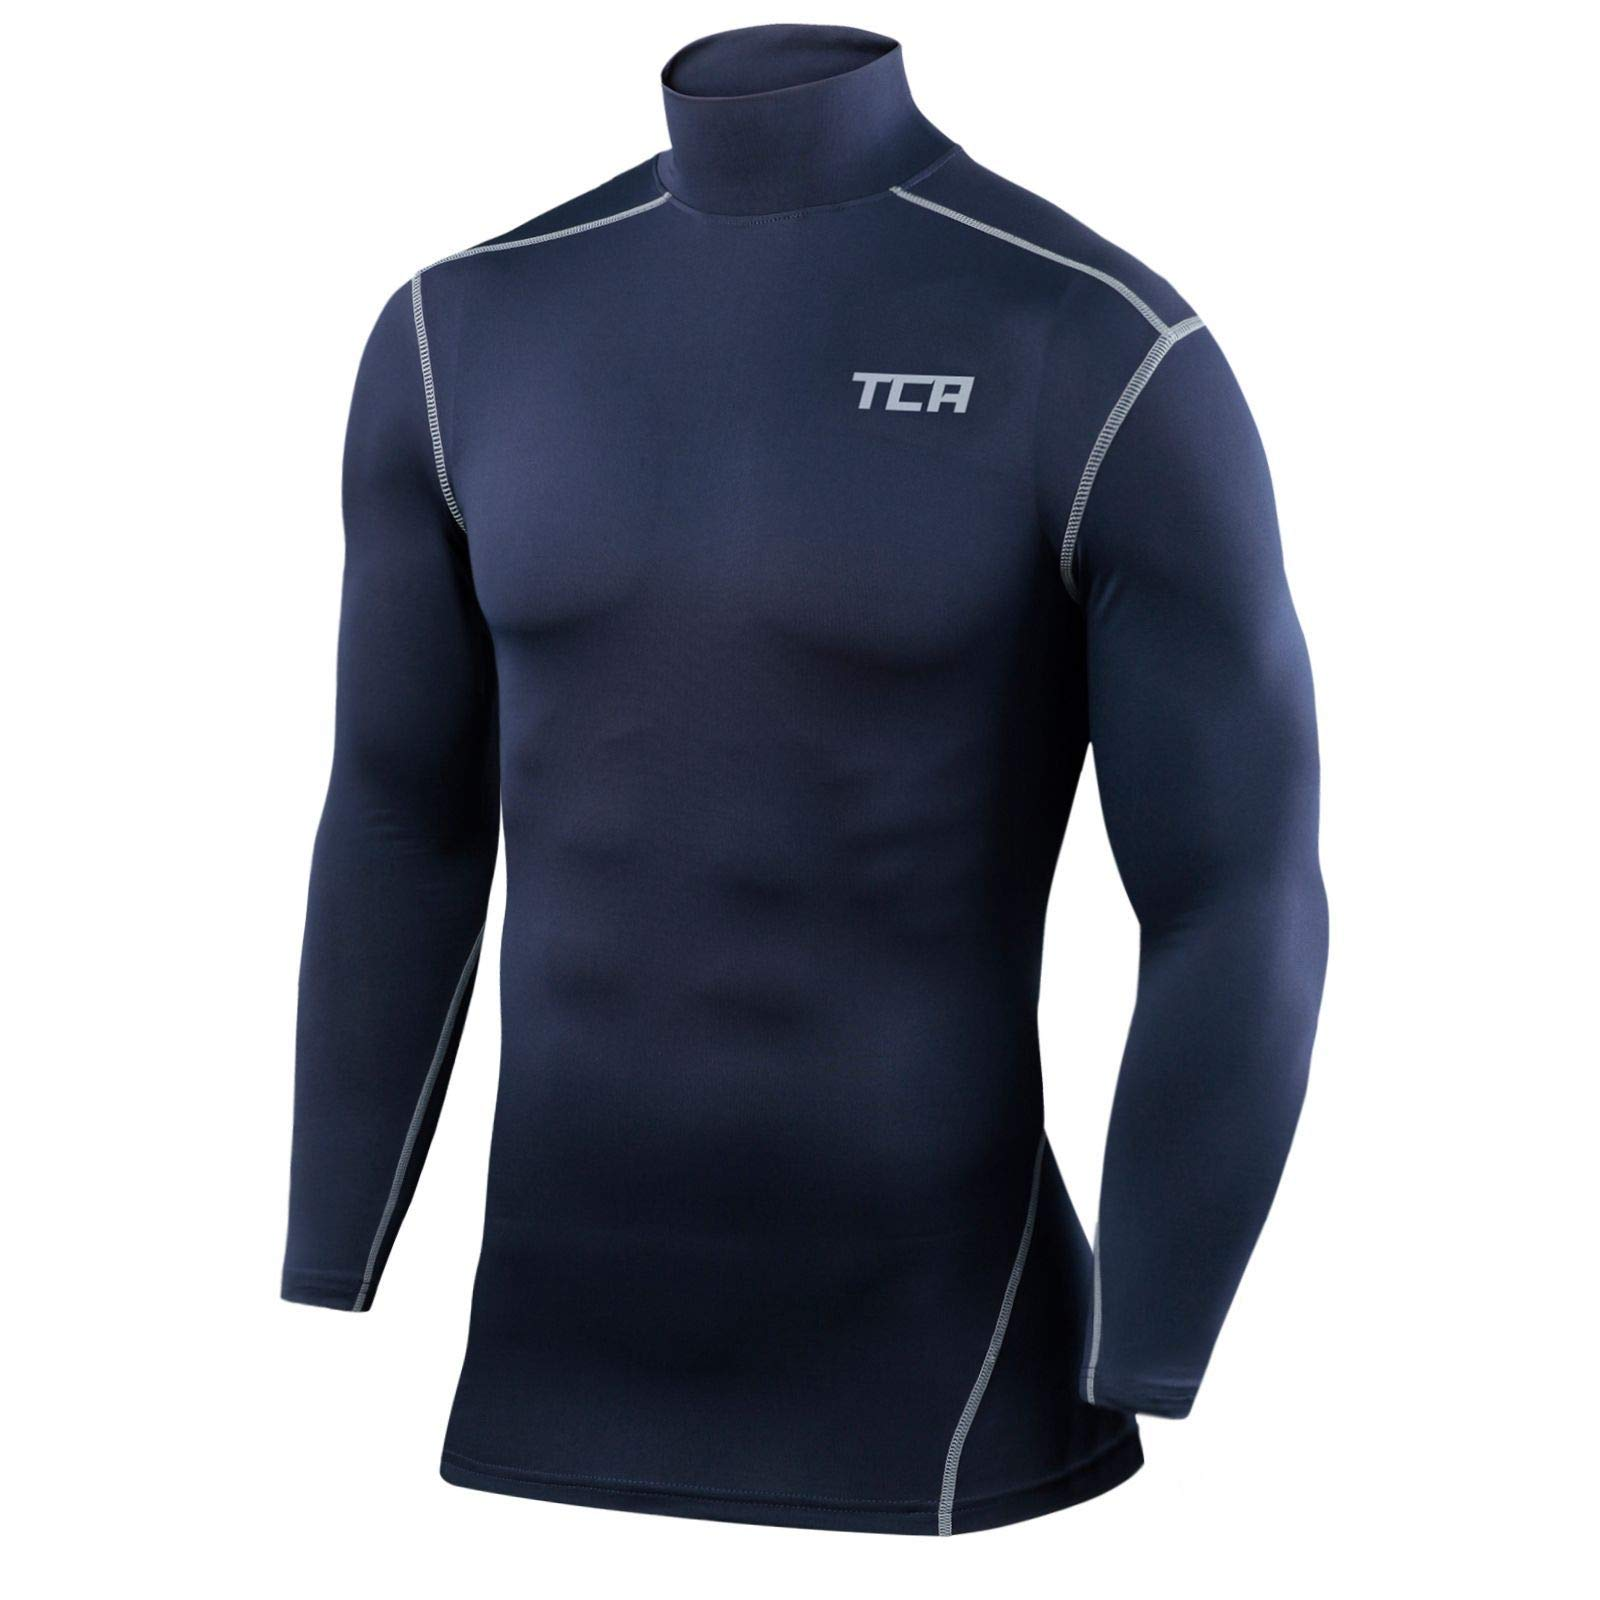 TCA Boys' Youth & Men's Pro Performance Compression Shirt Long Sleeve Base Layer Thermal Top - Crew/Mock Neck